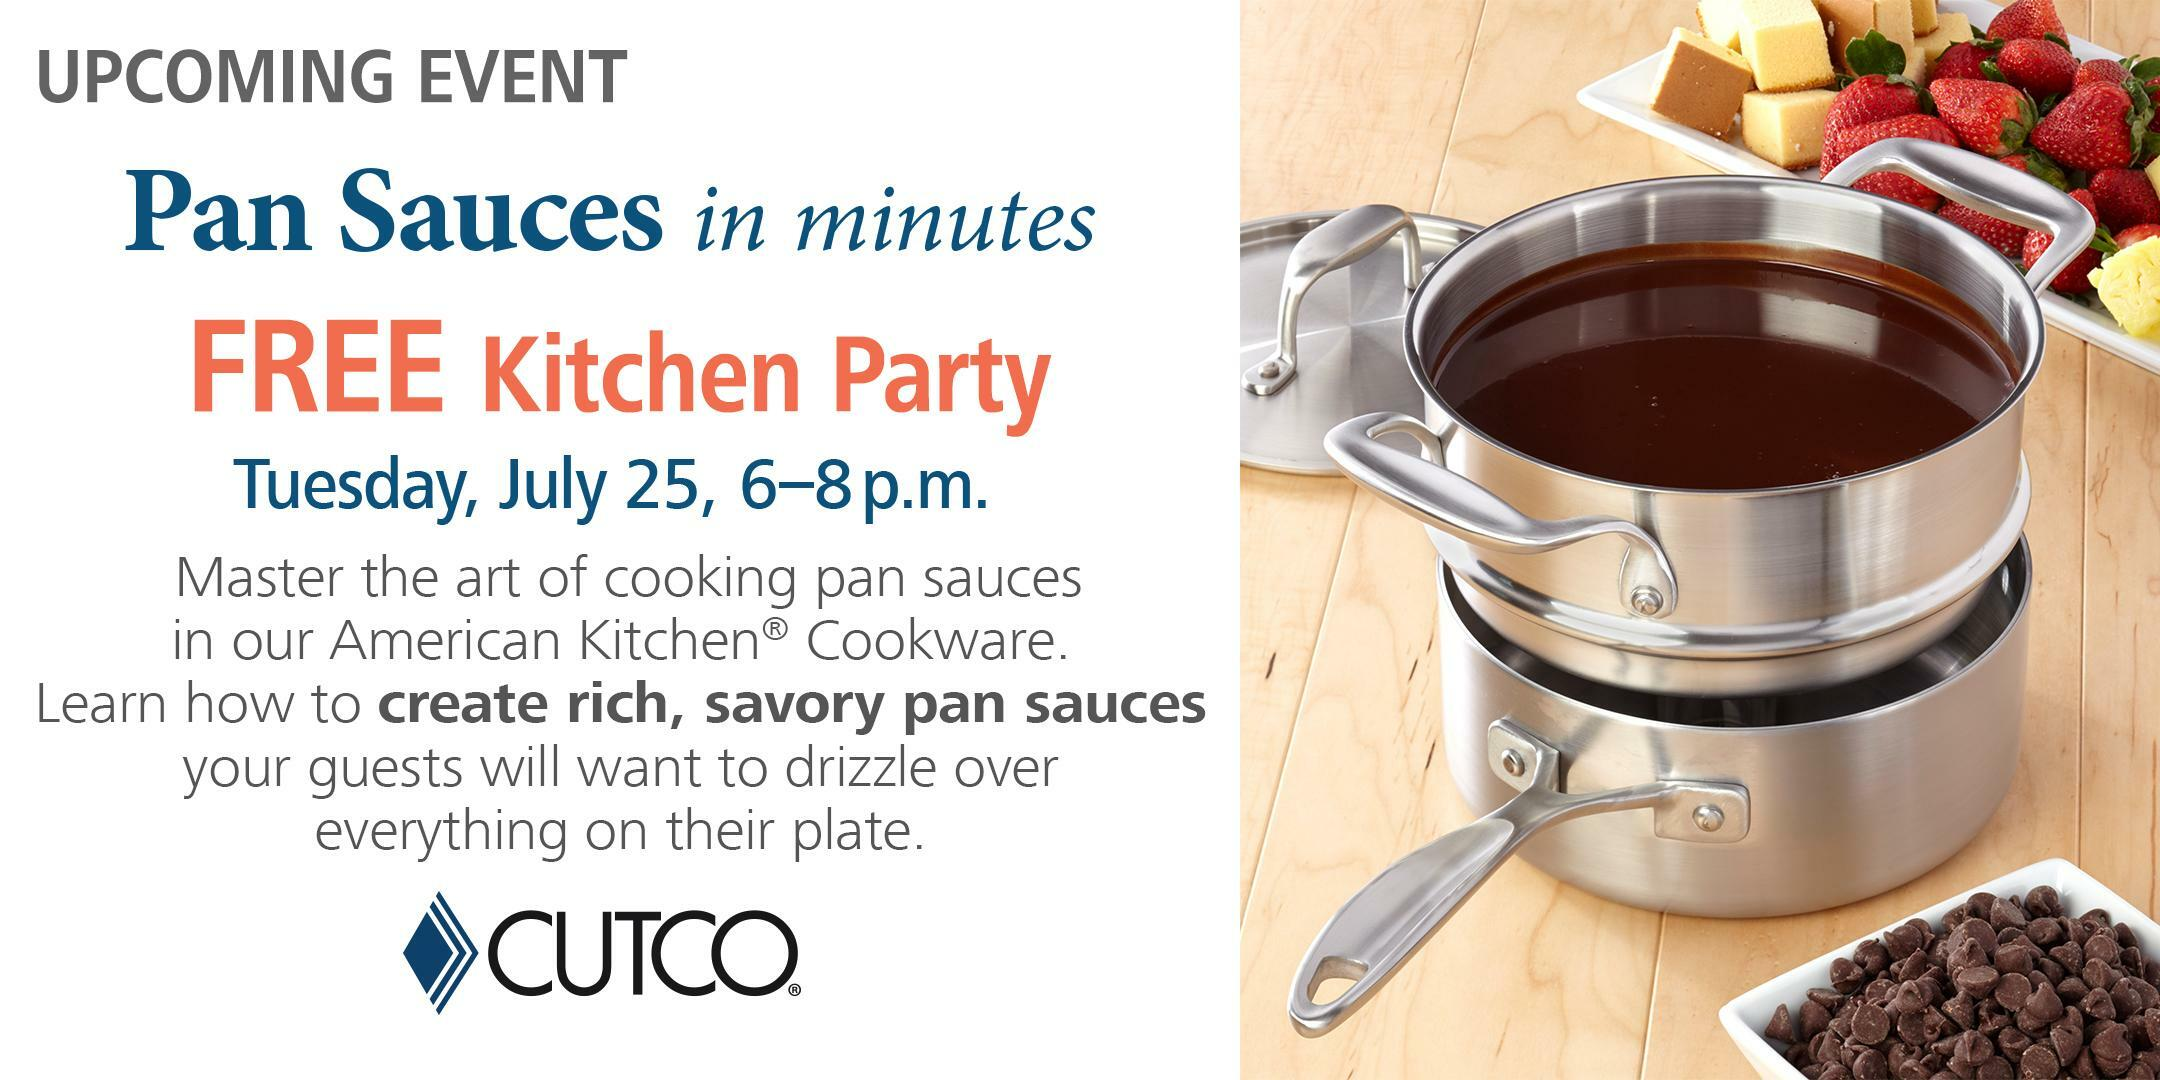 Free Cooking Class: Pan Sauces Philadelphia Tickets - n/a at CUTCO ...